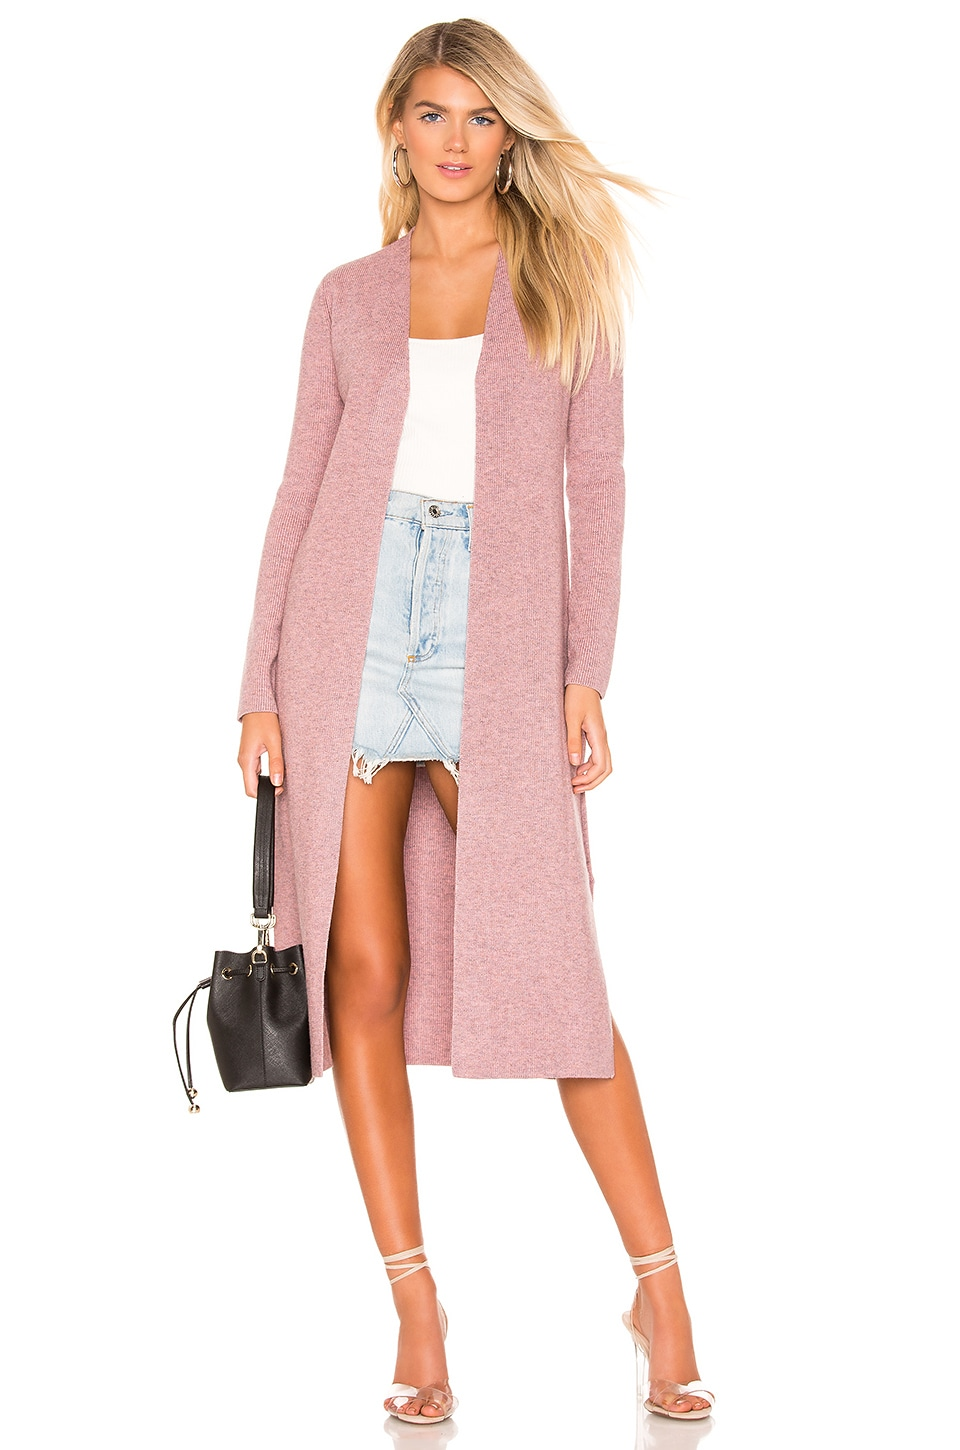 Lovers + Friends Davenport Cardigan in Heather Pink